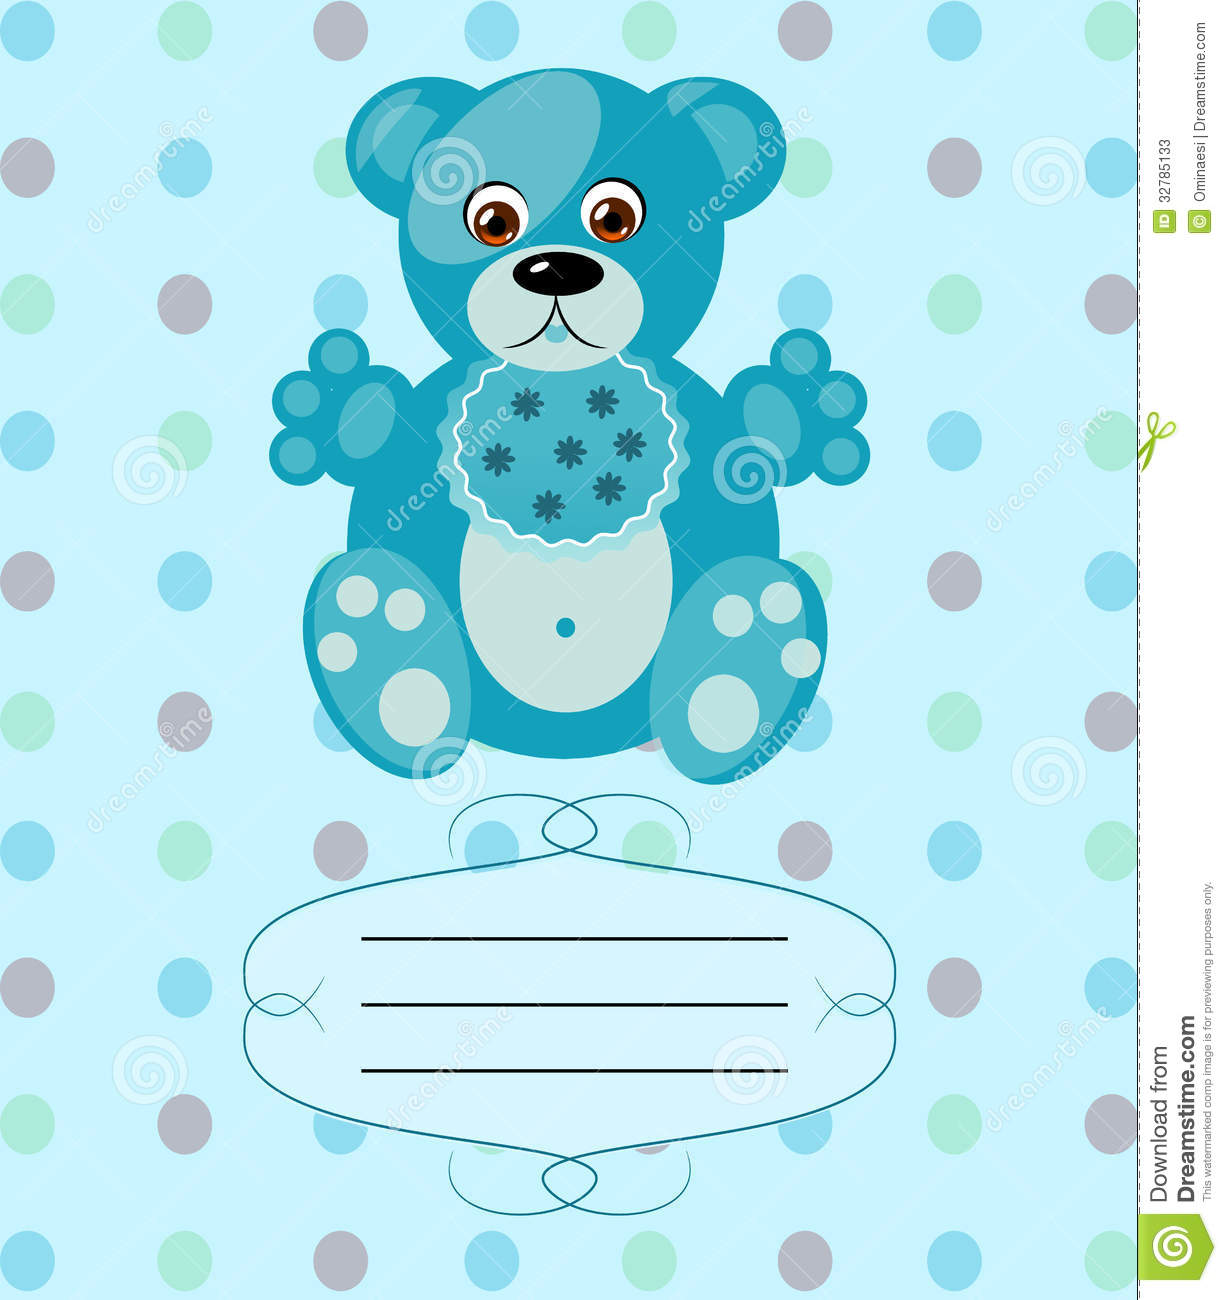 Newborn Baby Girl Wishes Wallpaper Baby Boy Greeting Card Vector Background Eps10 Stock